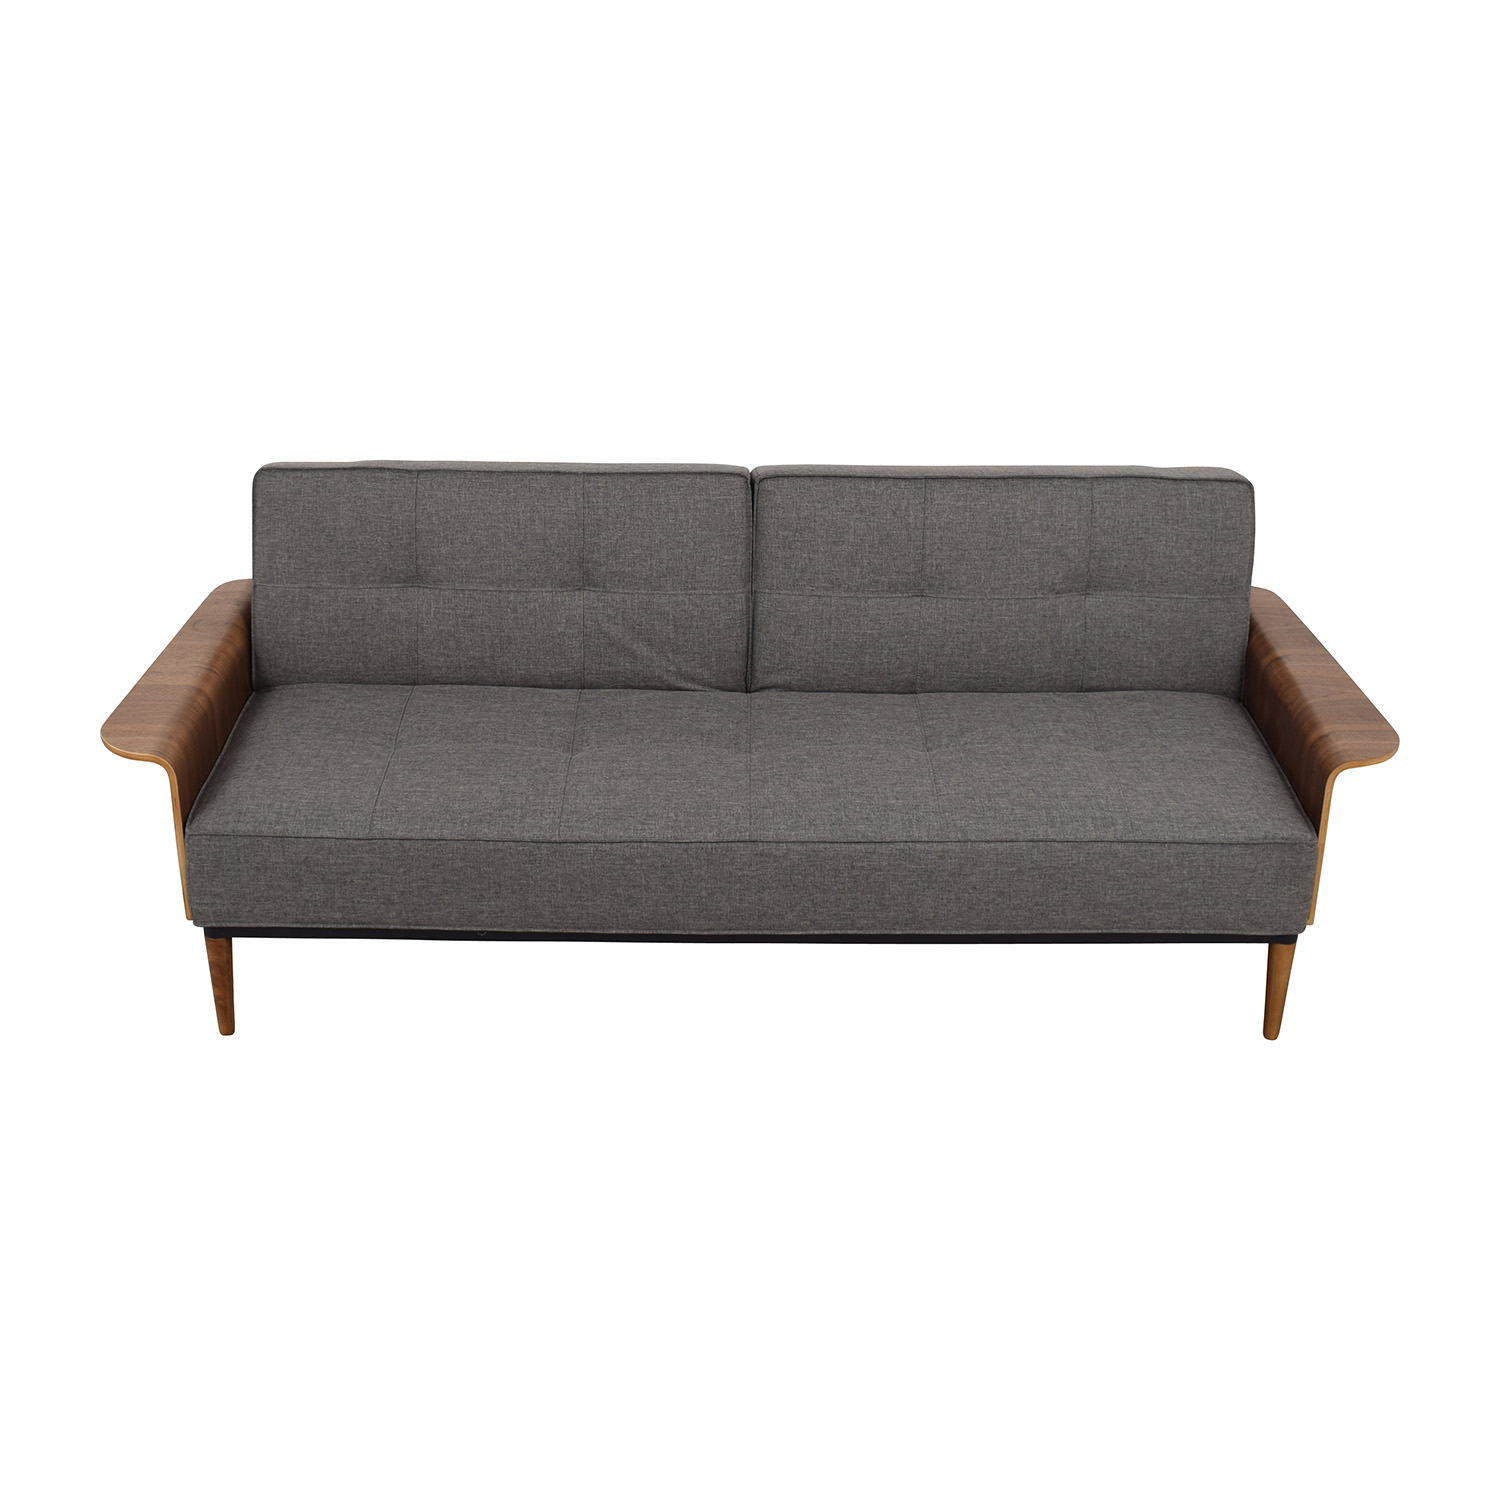 Inmod Inmod Bjorg Tufted Dark Grey Sofabed for sale